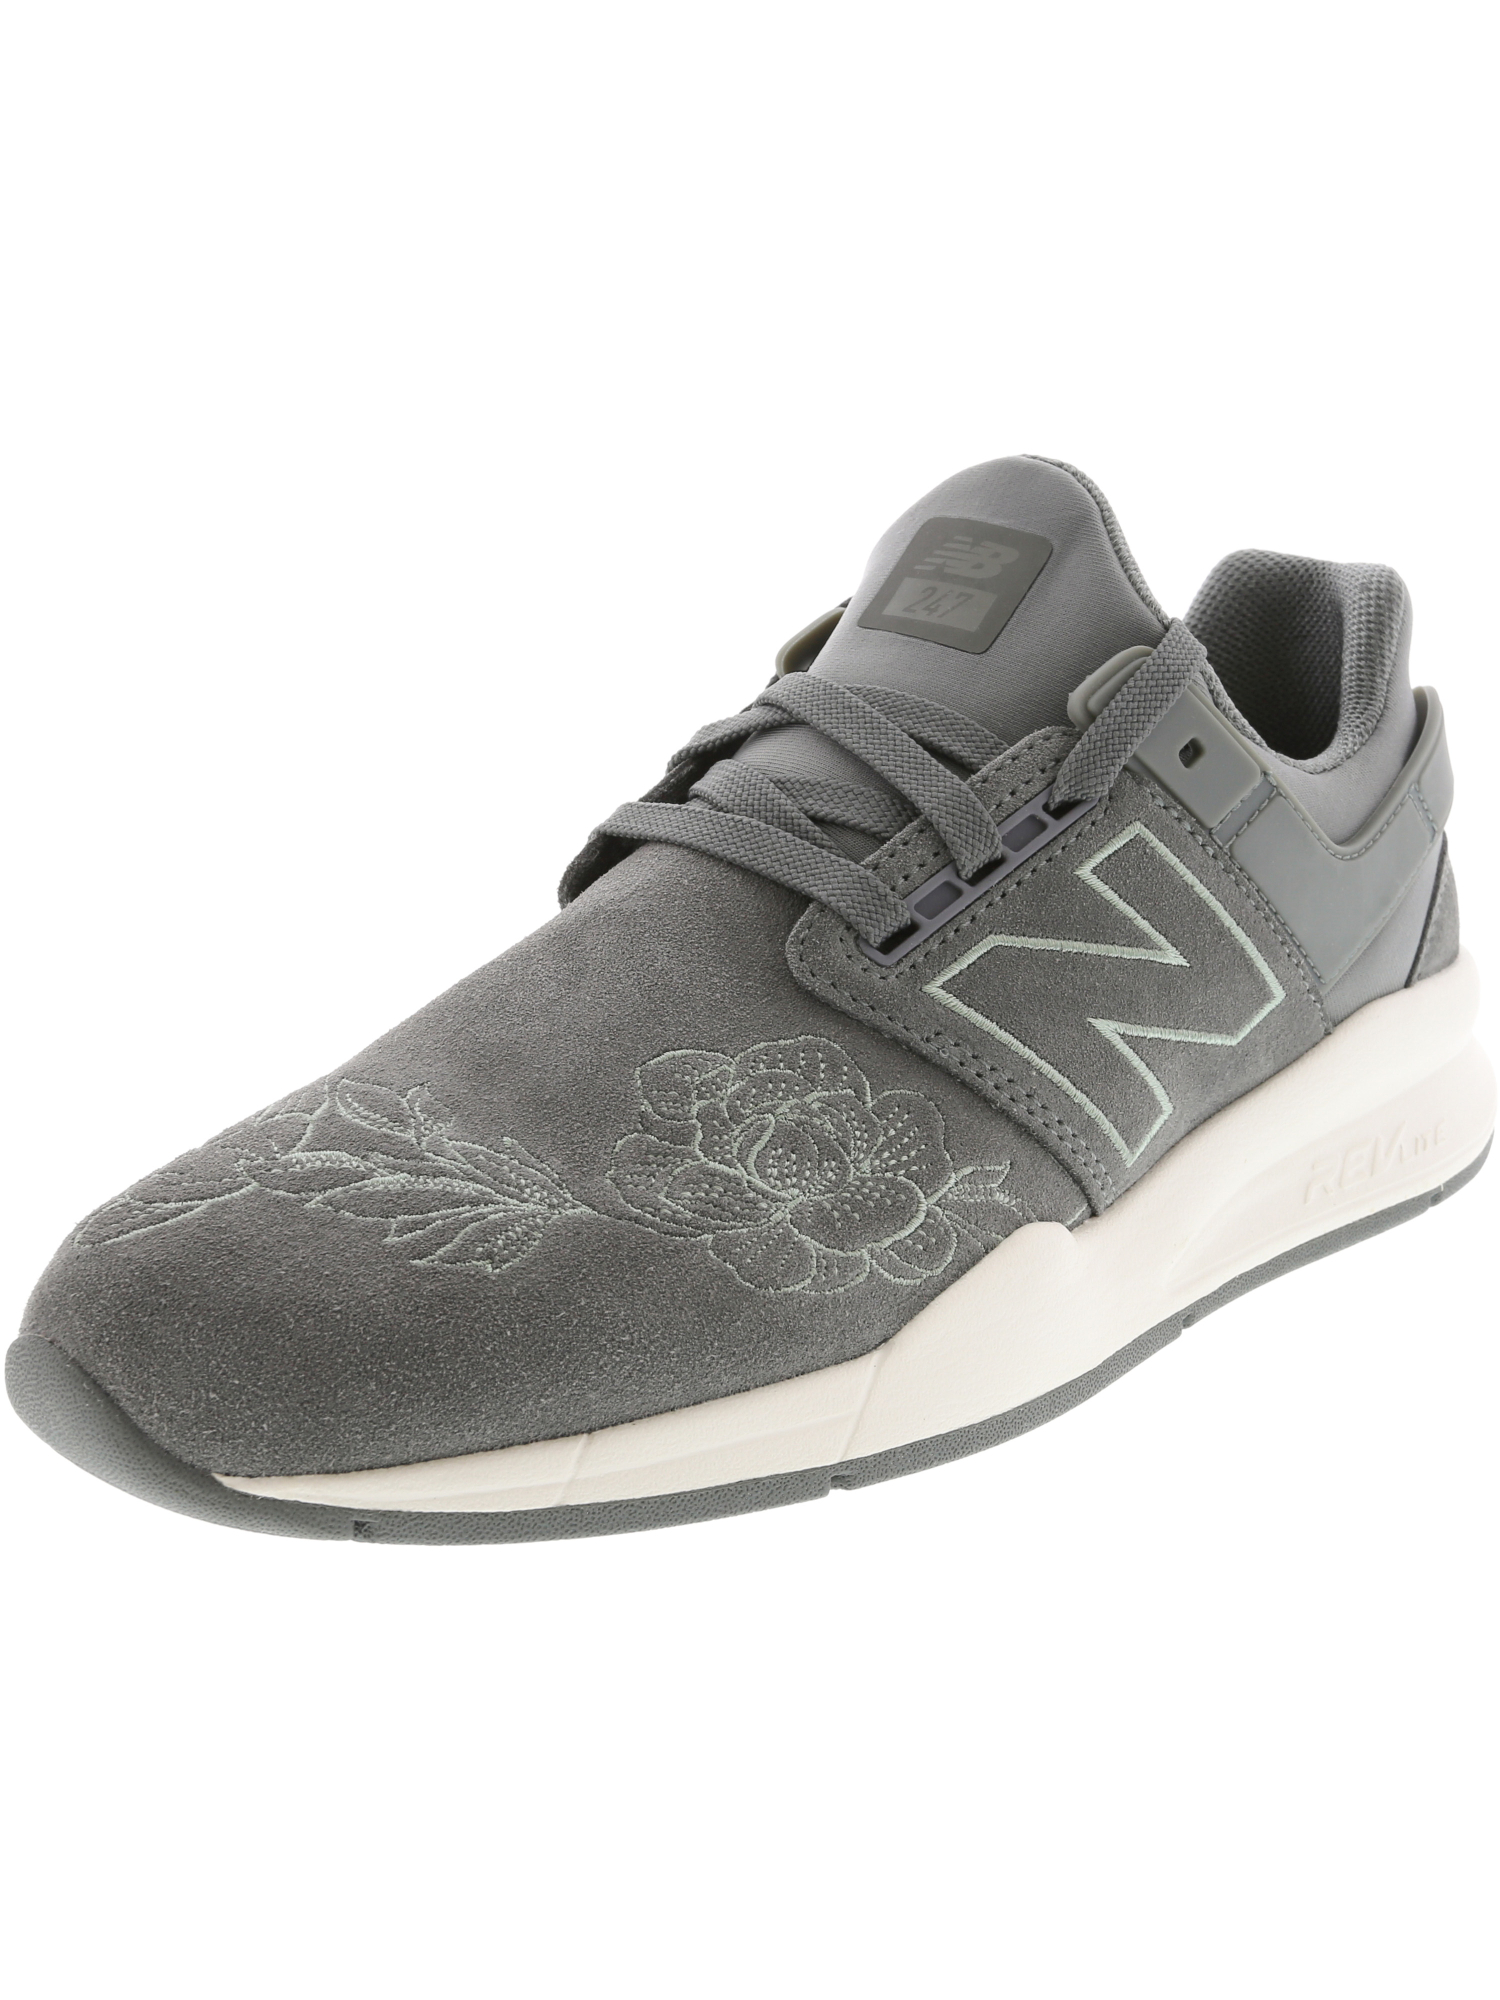 new style e40ef 40b08 ... New Balance Femme Ws247 Ws247 Ws247 Cheville-High Fashion baskets  90e879 ...